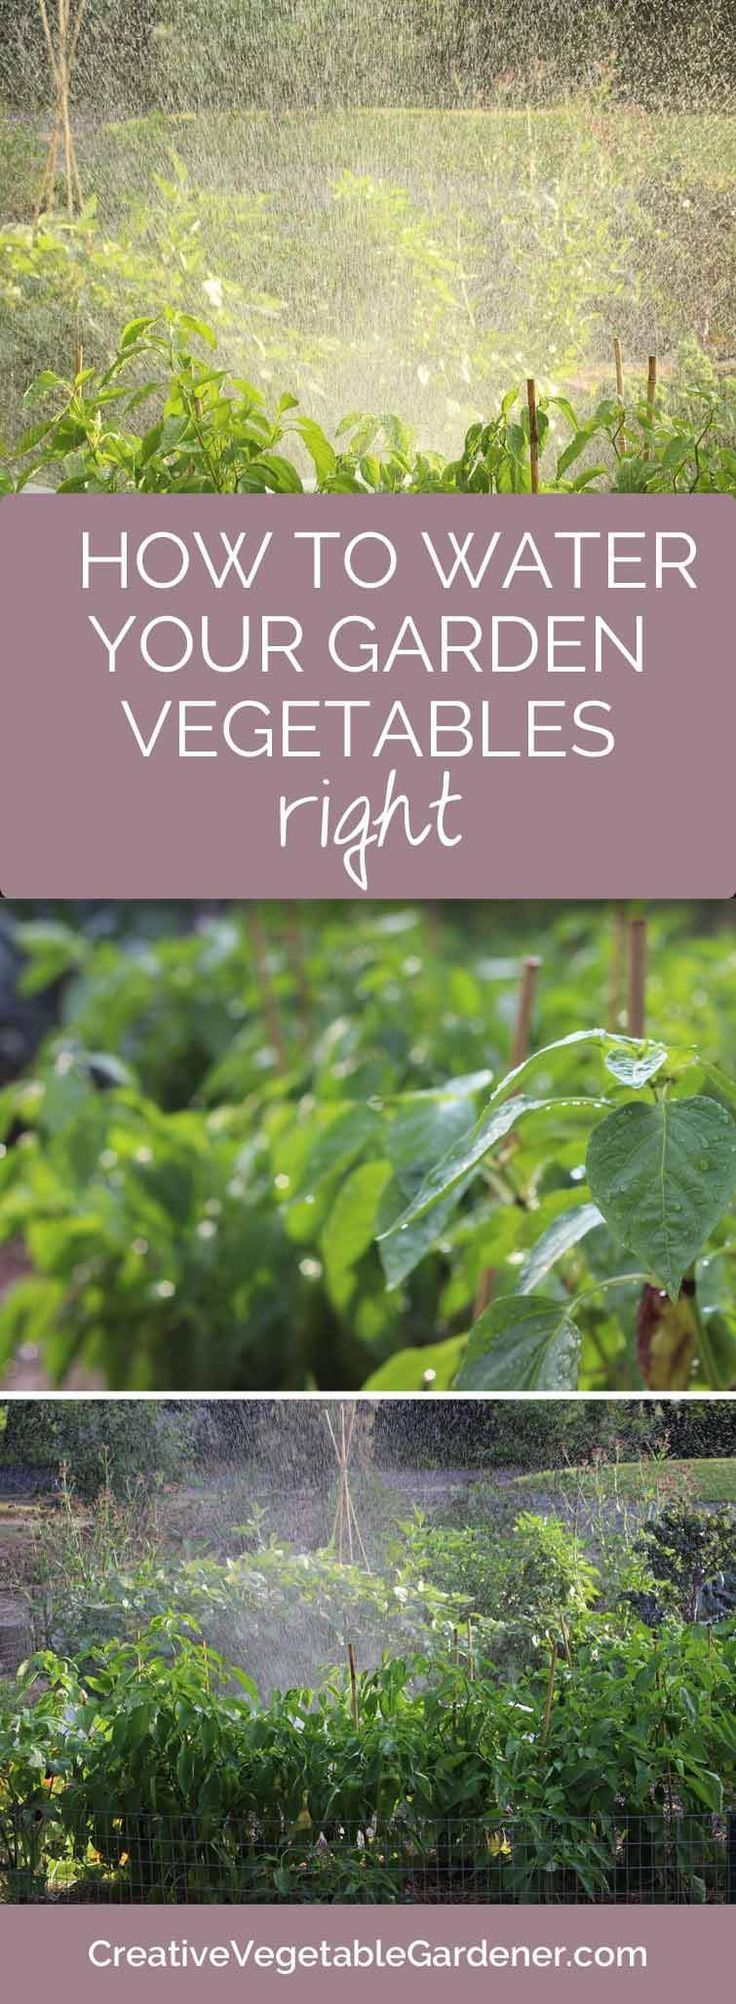 Secrets To Watering Your Vegetable Garden The Right Way 400 x 300